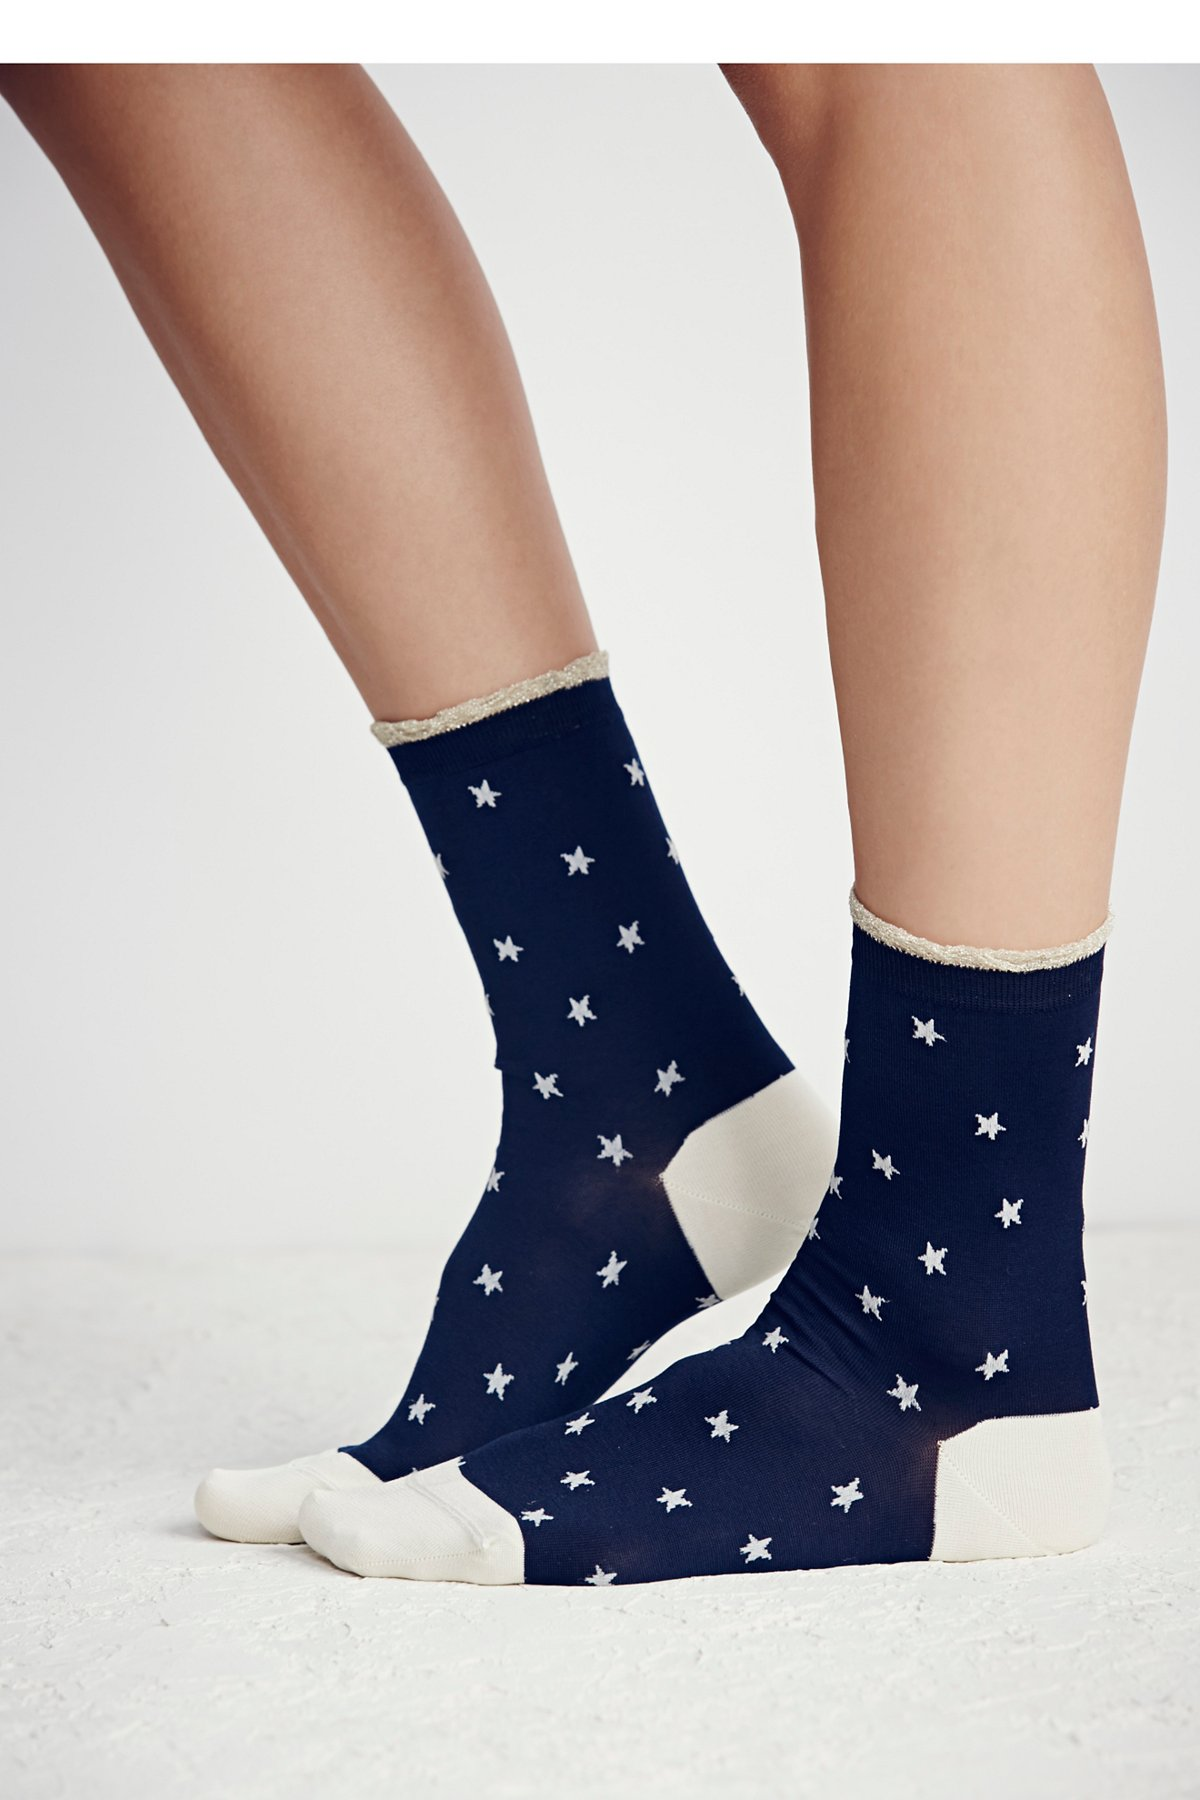 Follow The Stars Anklet